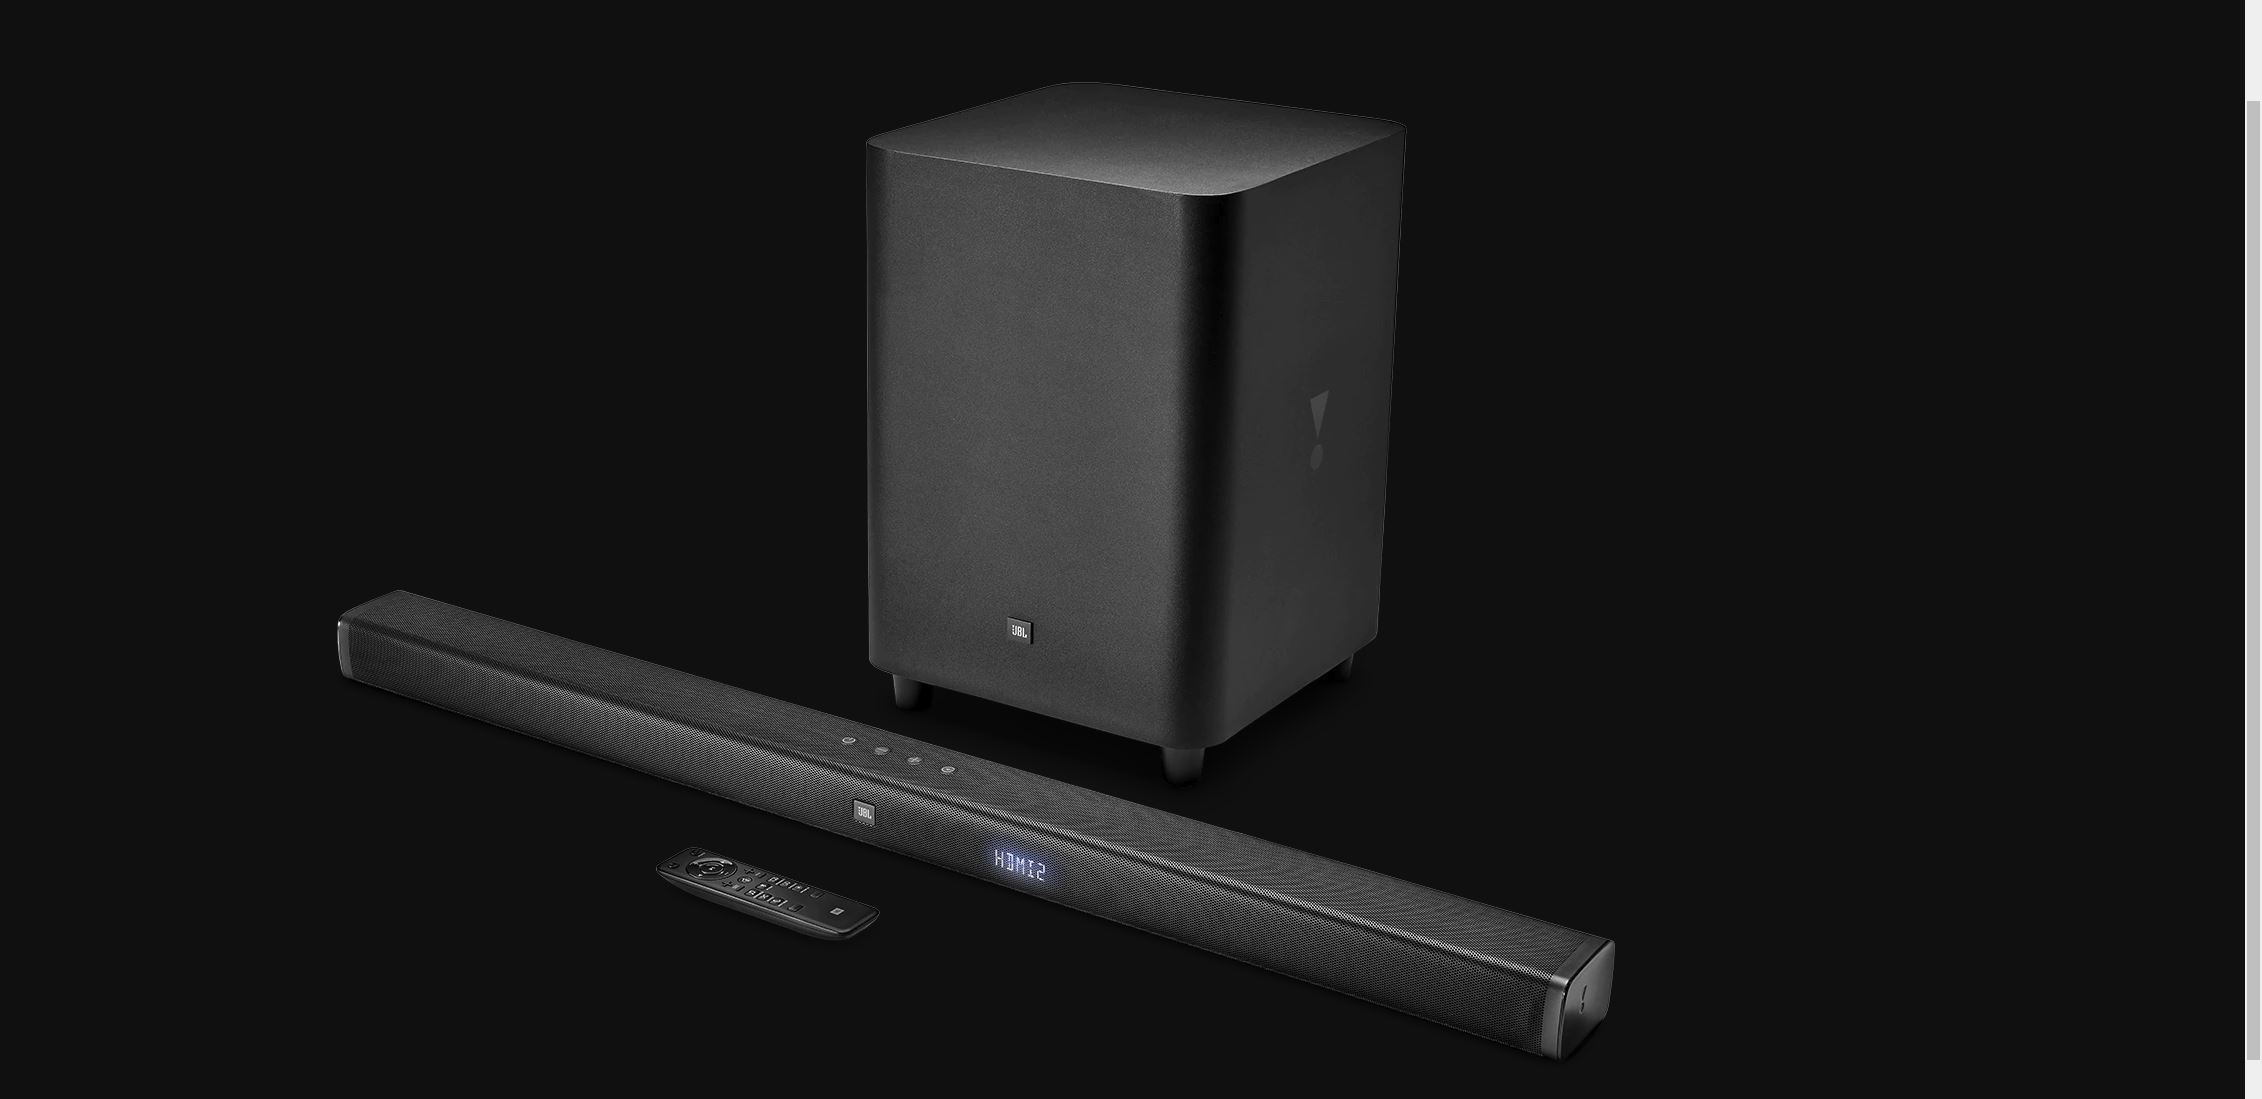 REVIEW: JBL 3 1 Soundbar, Small But Where Do They Get All